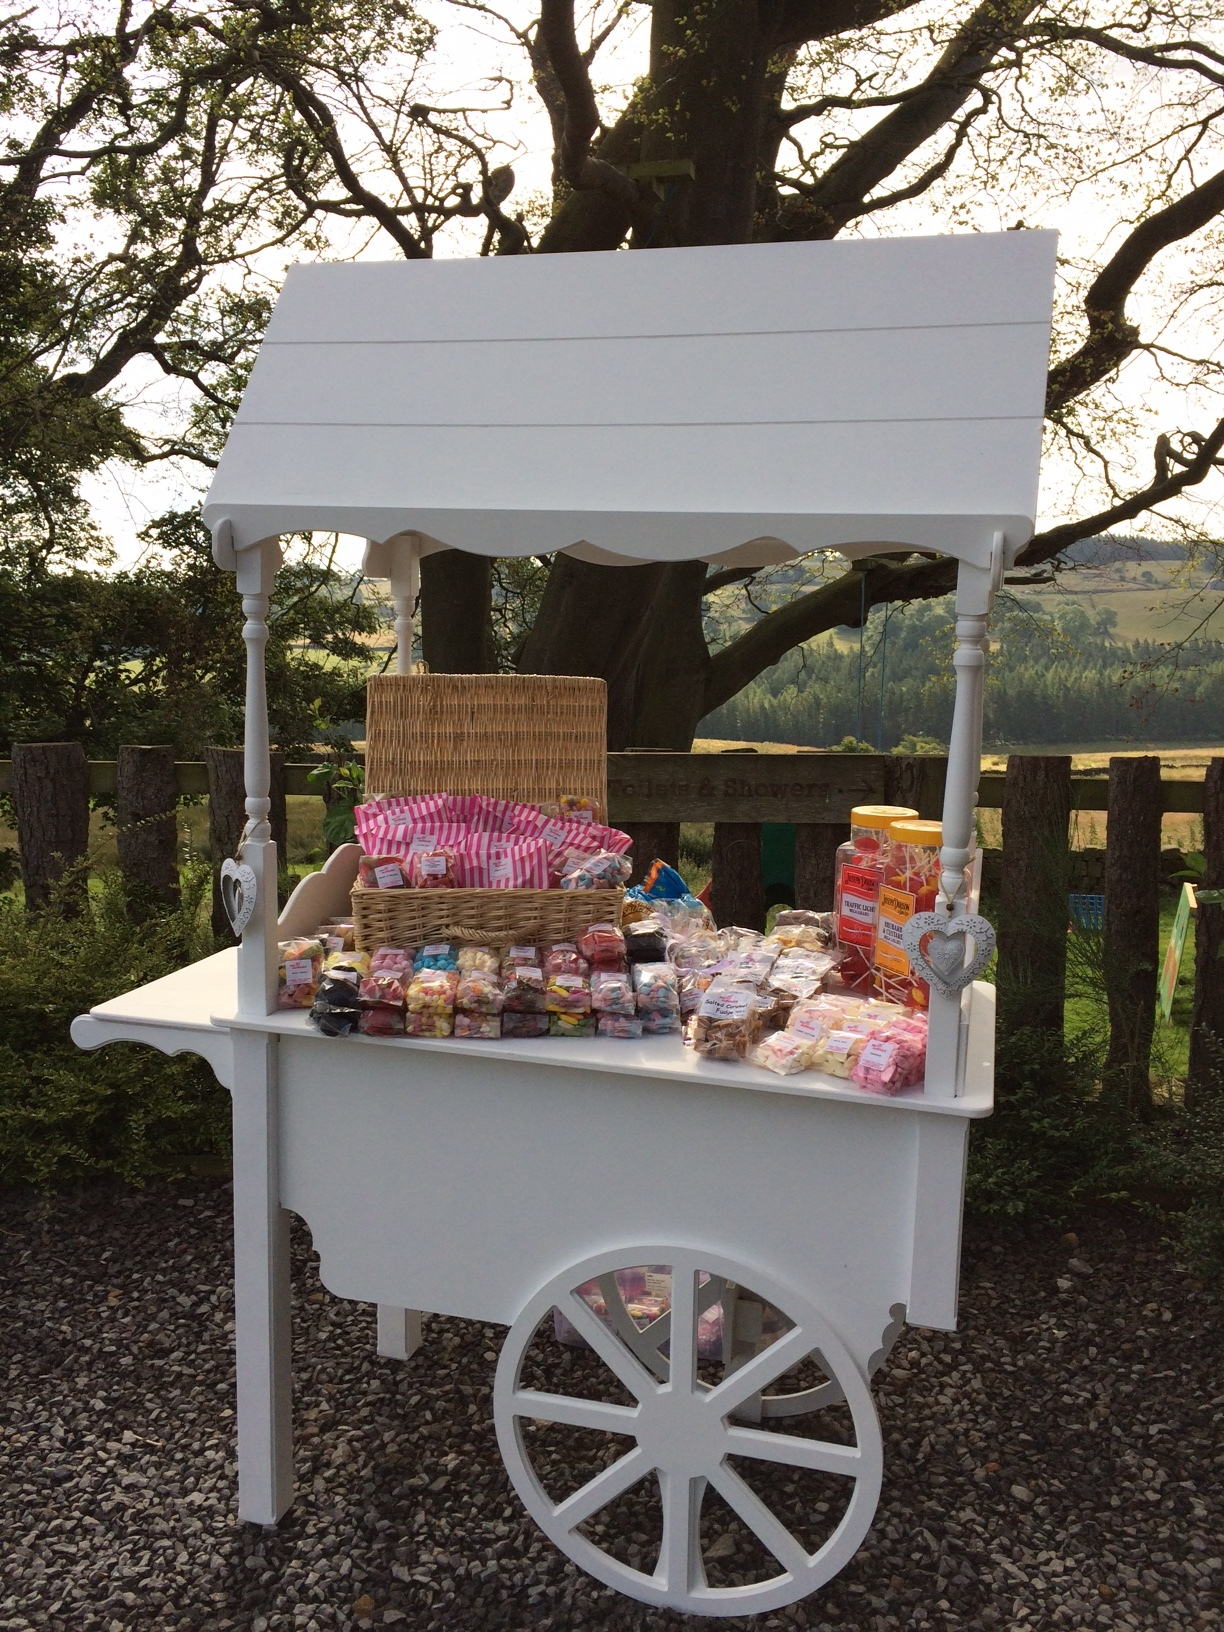 Sweet Cart at an outside event